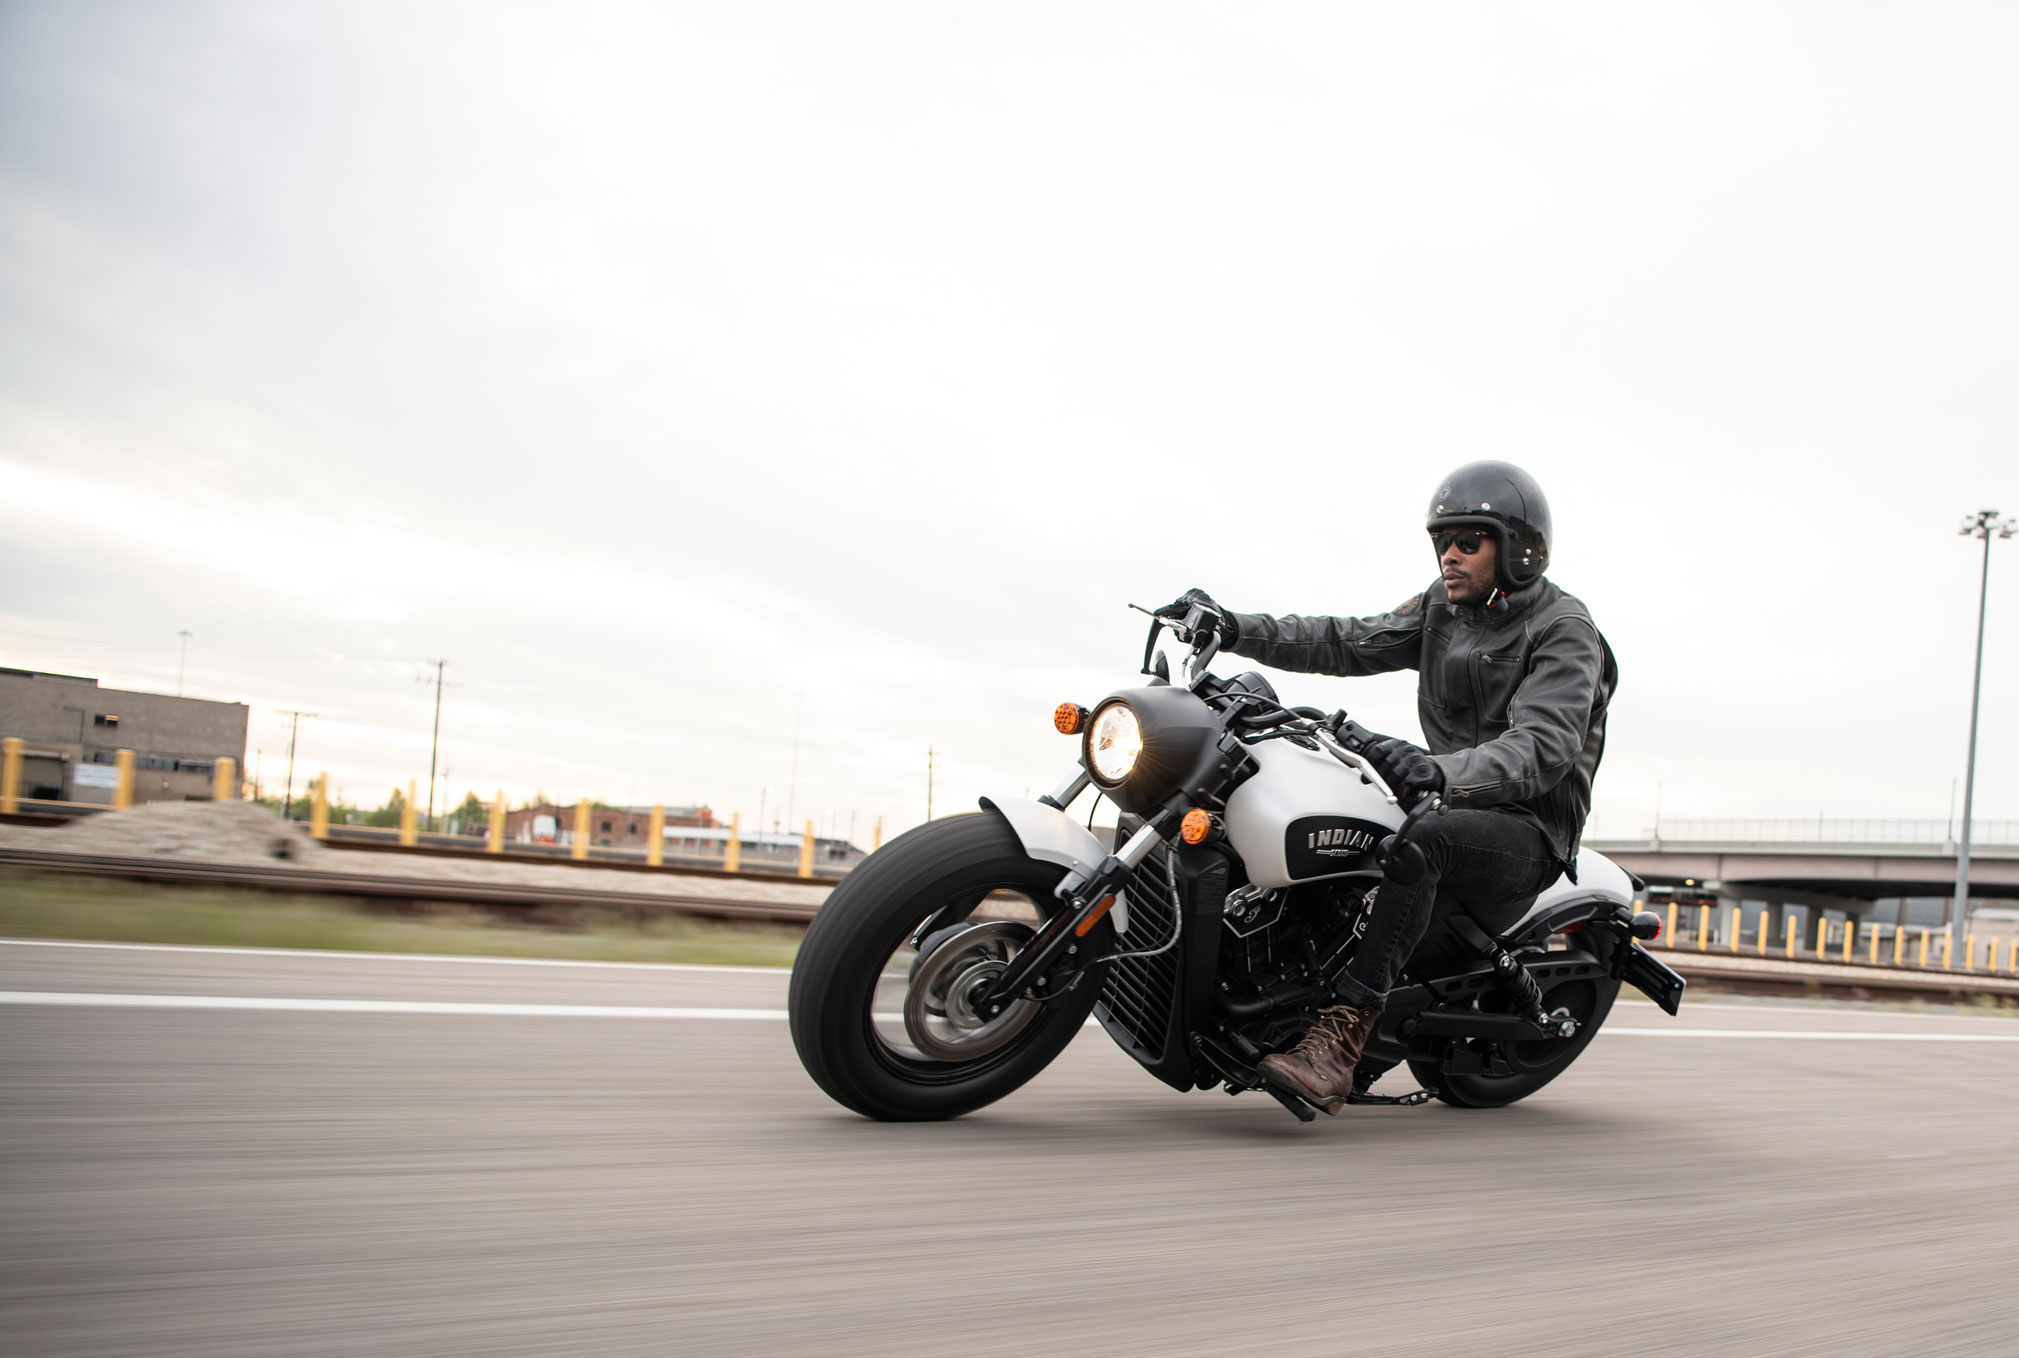 2019 Indian Scout Bobber Guide • Total Motorcycle